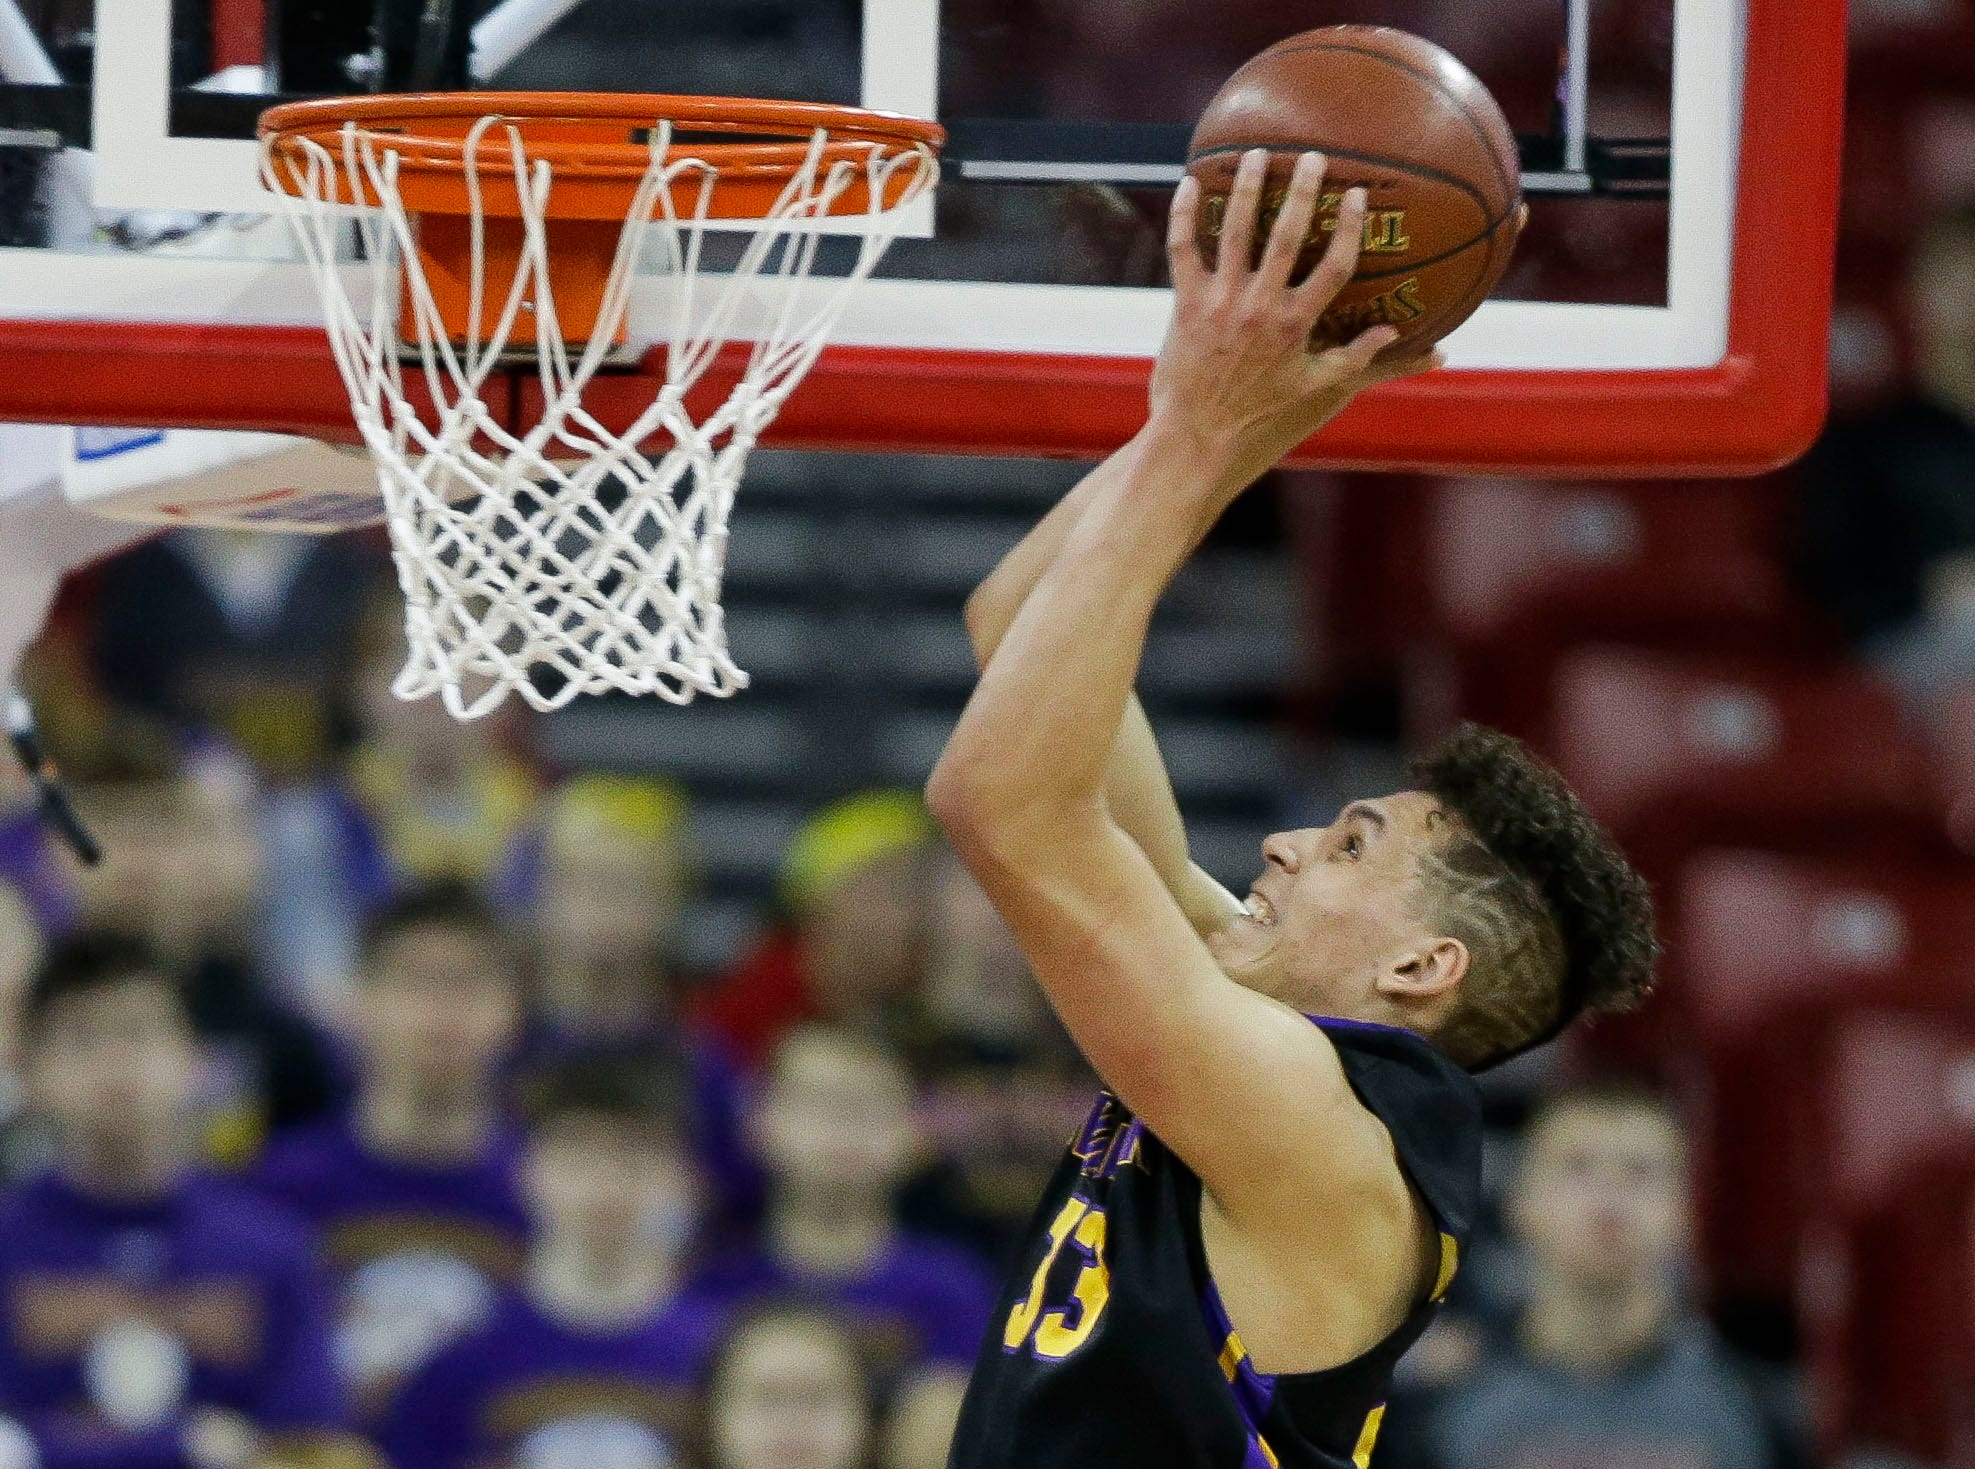 Denmark's Patrick Suemnick (33) dunks off an alley-oop against Waupun in a Division 3 boys basketball state semifinal Thursday at the Kohl Center in Madison.